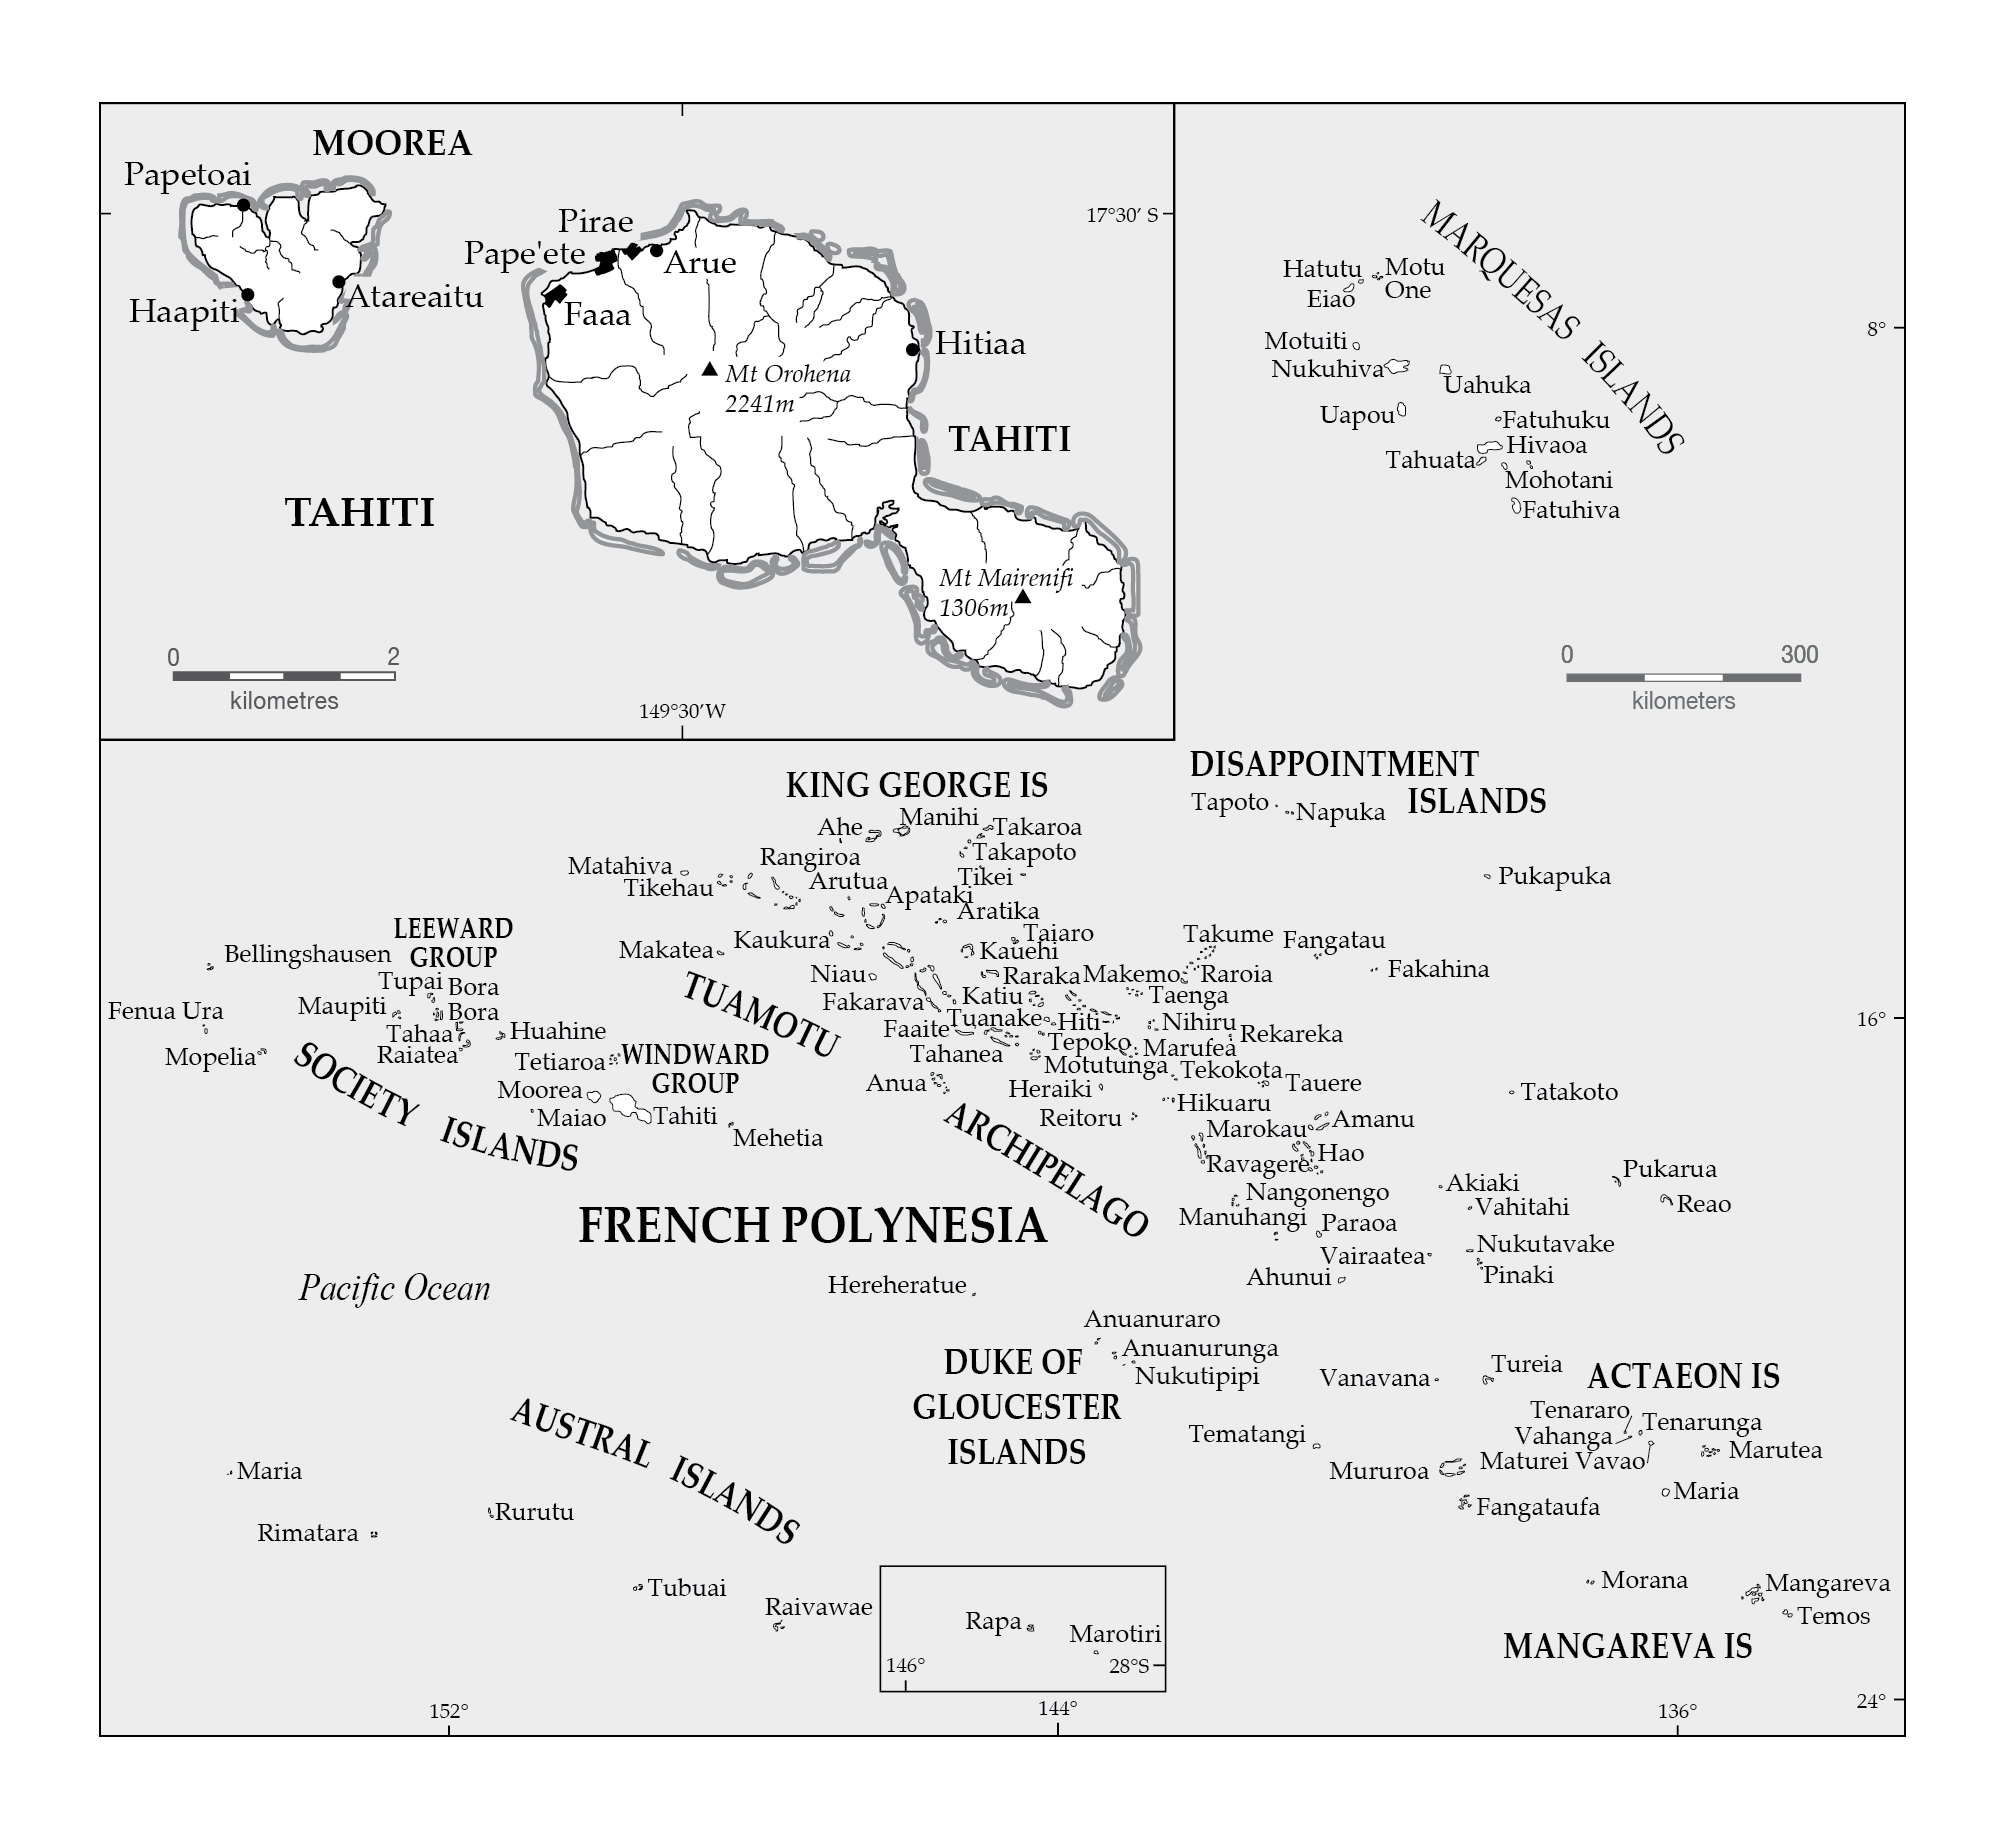 Large political map of Tahiti and French Polynesia | French ... on large map of australia, large map of pacific northwest, large map of chesapeake bay, large map of guam, large map of maui, large map of southeast asia, large map of singapore, large map of pacific ocean, large map of northern europe, large map of the west indies, large map of the philippine islands, large map of british isles, large map of puerto rico, large map of st. maarten, large map of france, large map of holy land, large map of fiji, large map of central america, large map of south pacific, large map of new england,